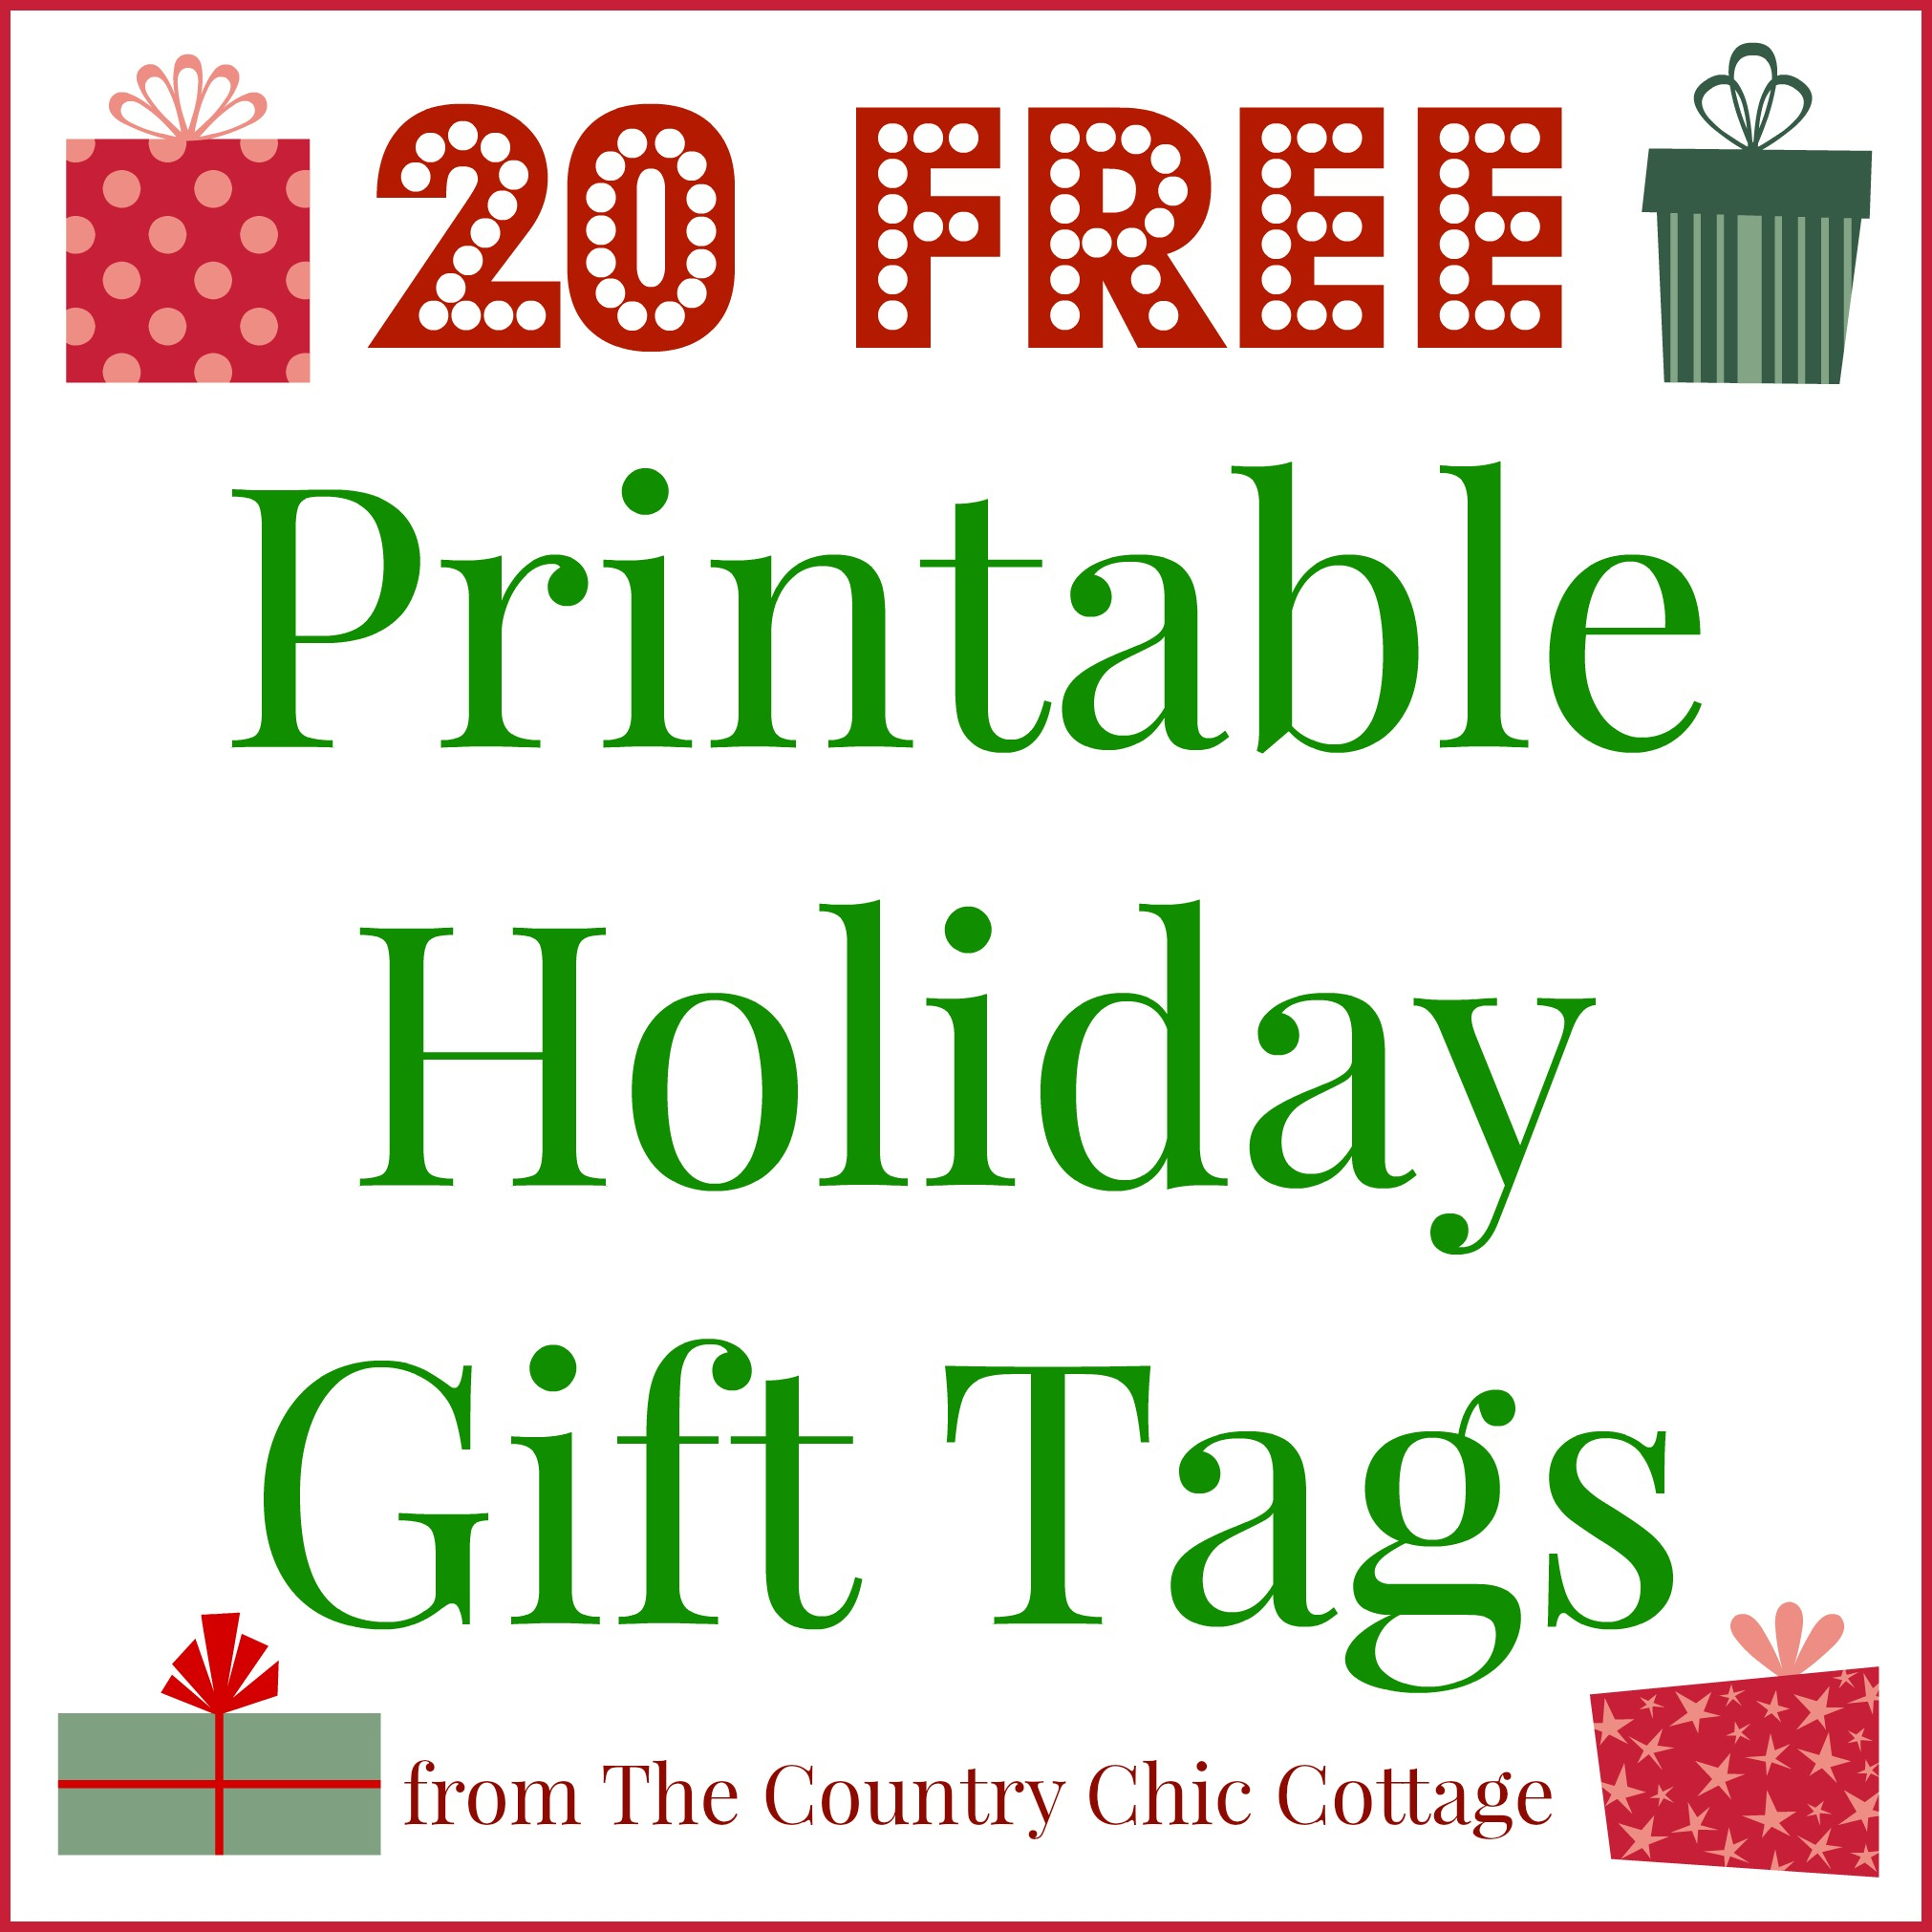 20 Printable Holiday Gift Tags (For Free!!) - The Country Chic Cottage - Free Printable Christmas Gift Tags